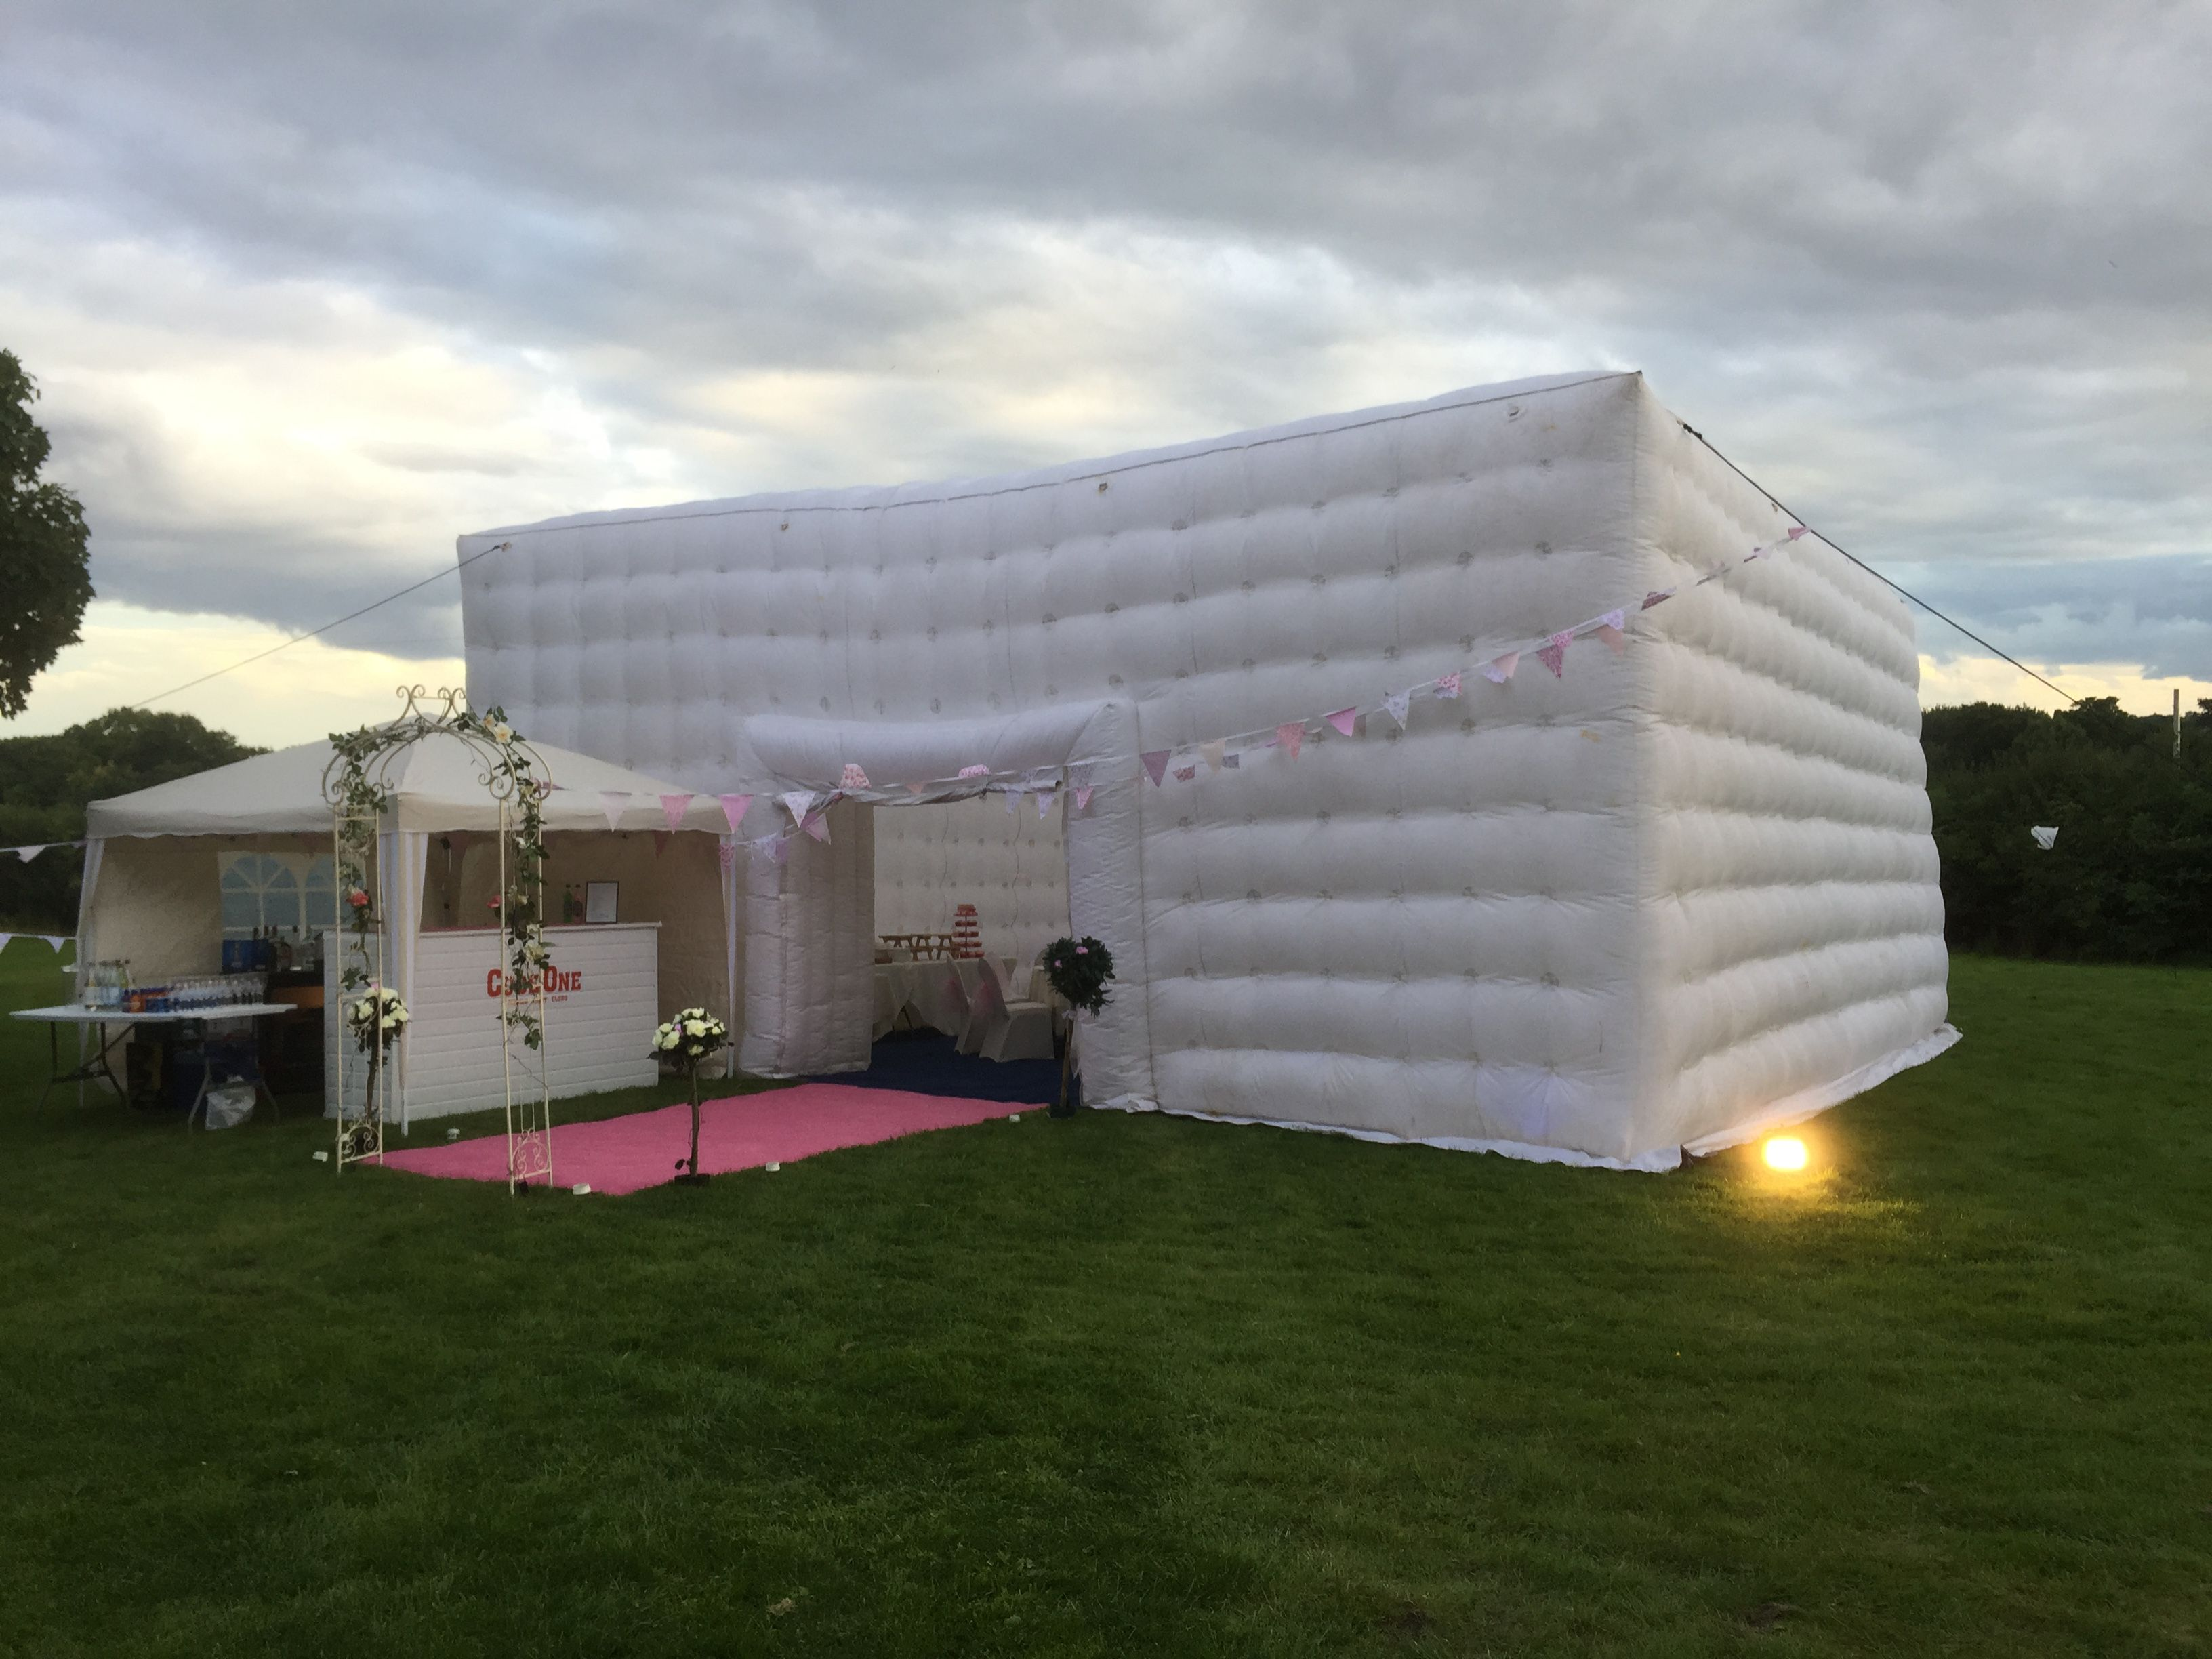 10m x 10m cube with baby pink themed entrance wedding arch and exterior bar!